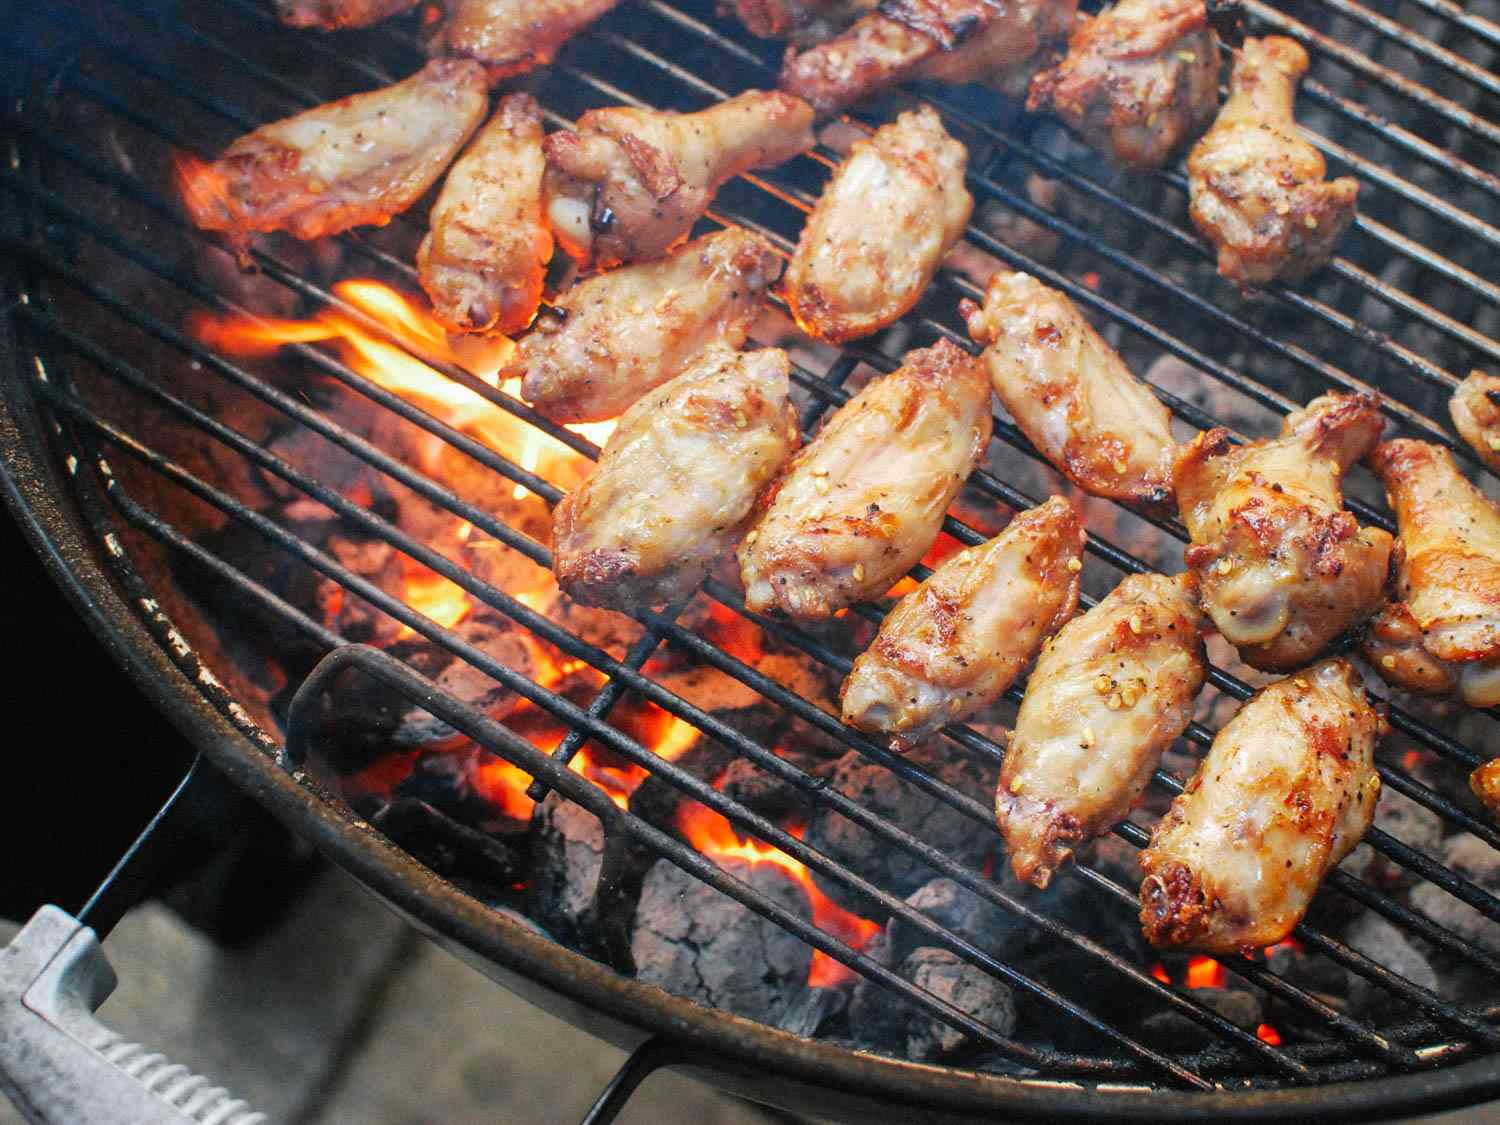 20150515-grilled-spicy-chicken-wings-soy-sauce-fish-sauce-shao-zhong-10.jpg